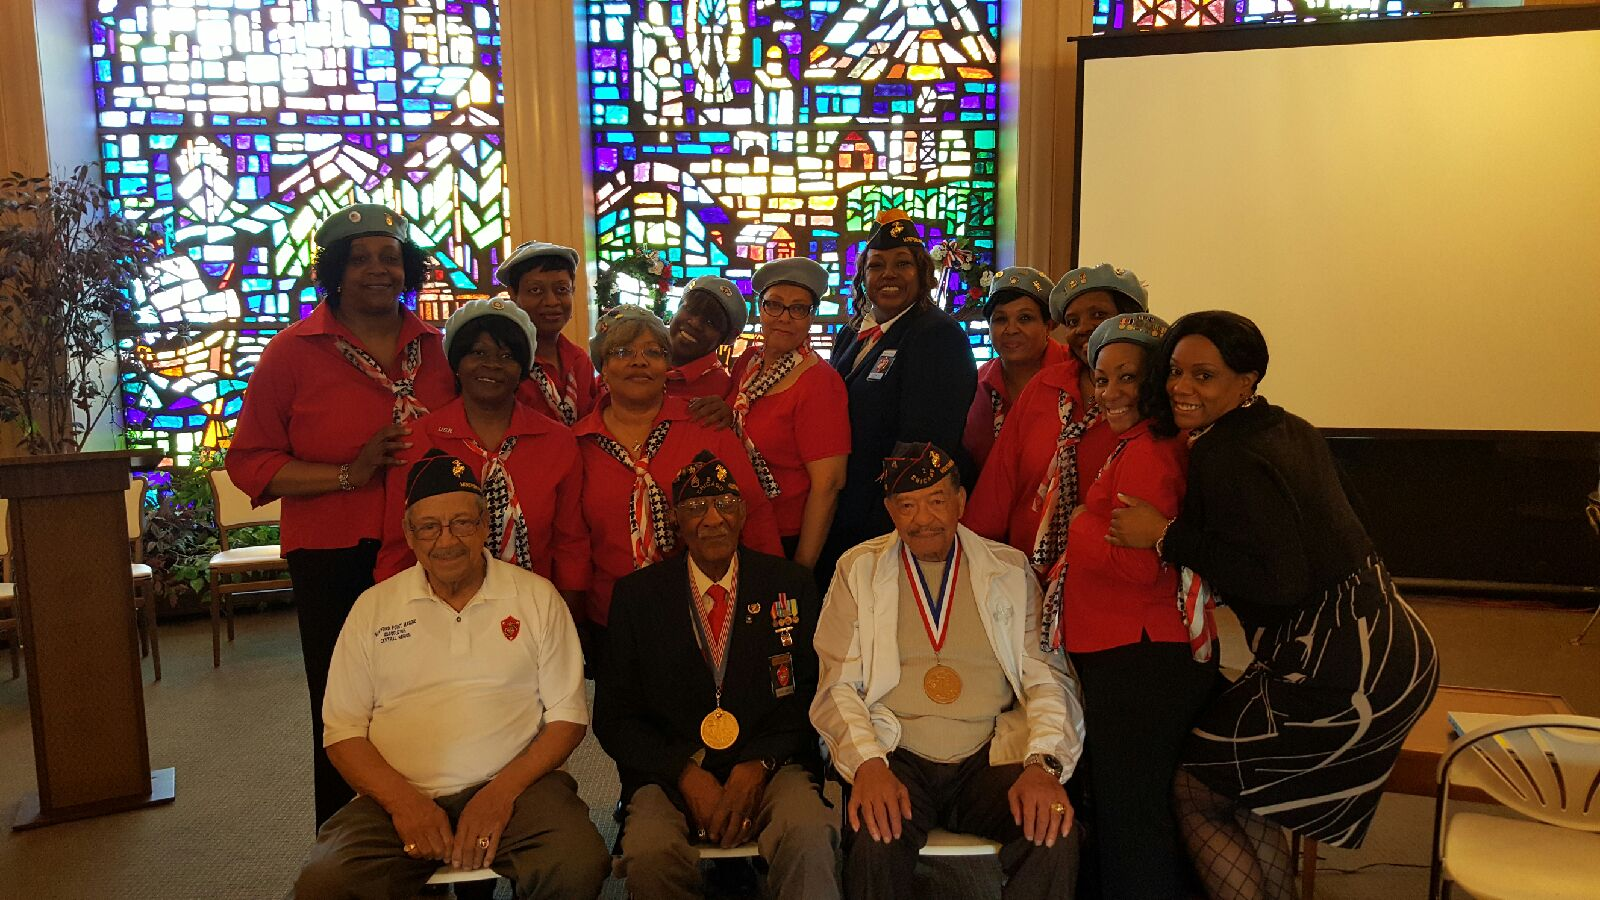 NWVU members shared a photo with Jocelyn Buchanan, soloist and  (3) of the first African Americans to serve in the US Marine Corps during WW II (left) John Vanoy (center) James Reynolds and (right) Wendell Ferguson